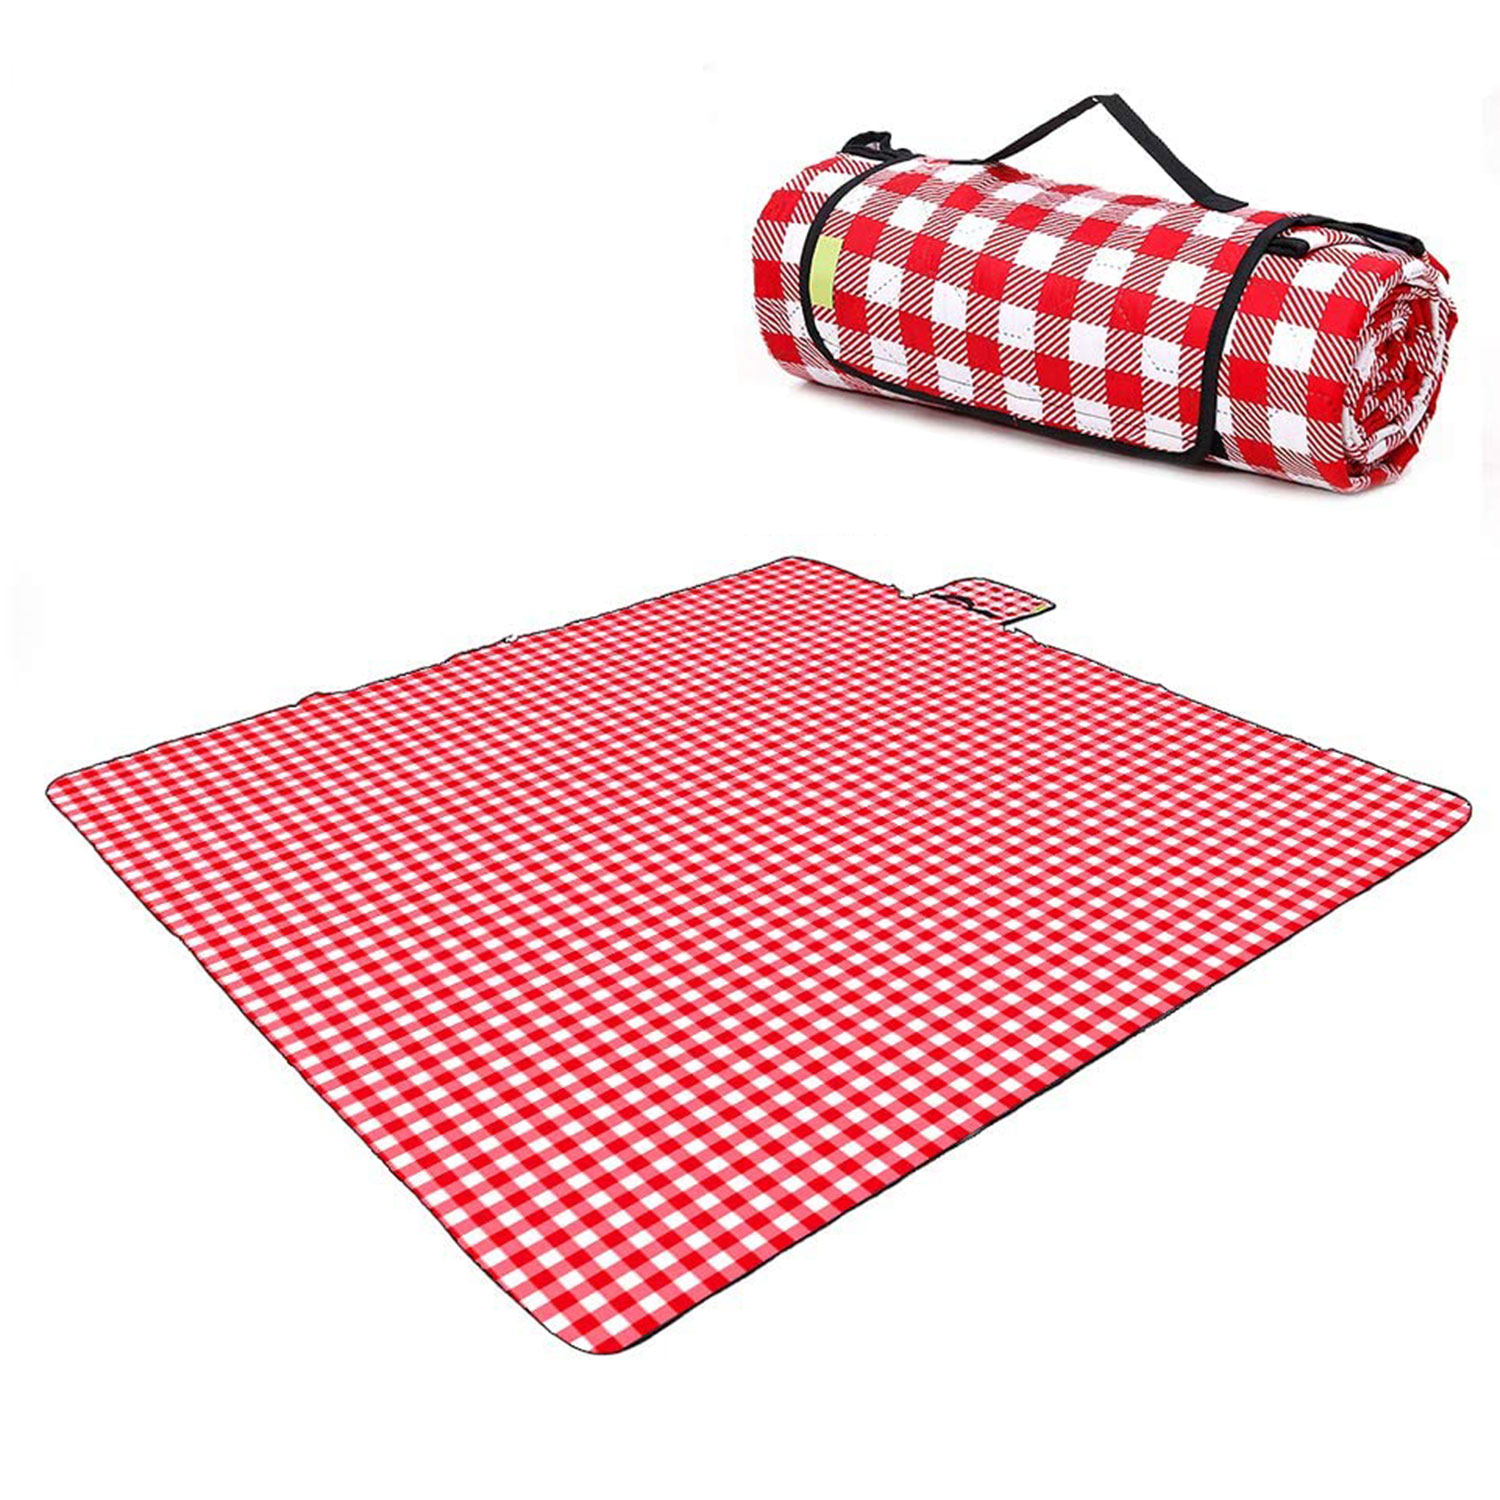 Picnic & Outdoor Blanket Dual Layers for Outdoor Water-Resistant